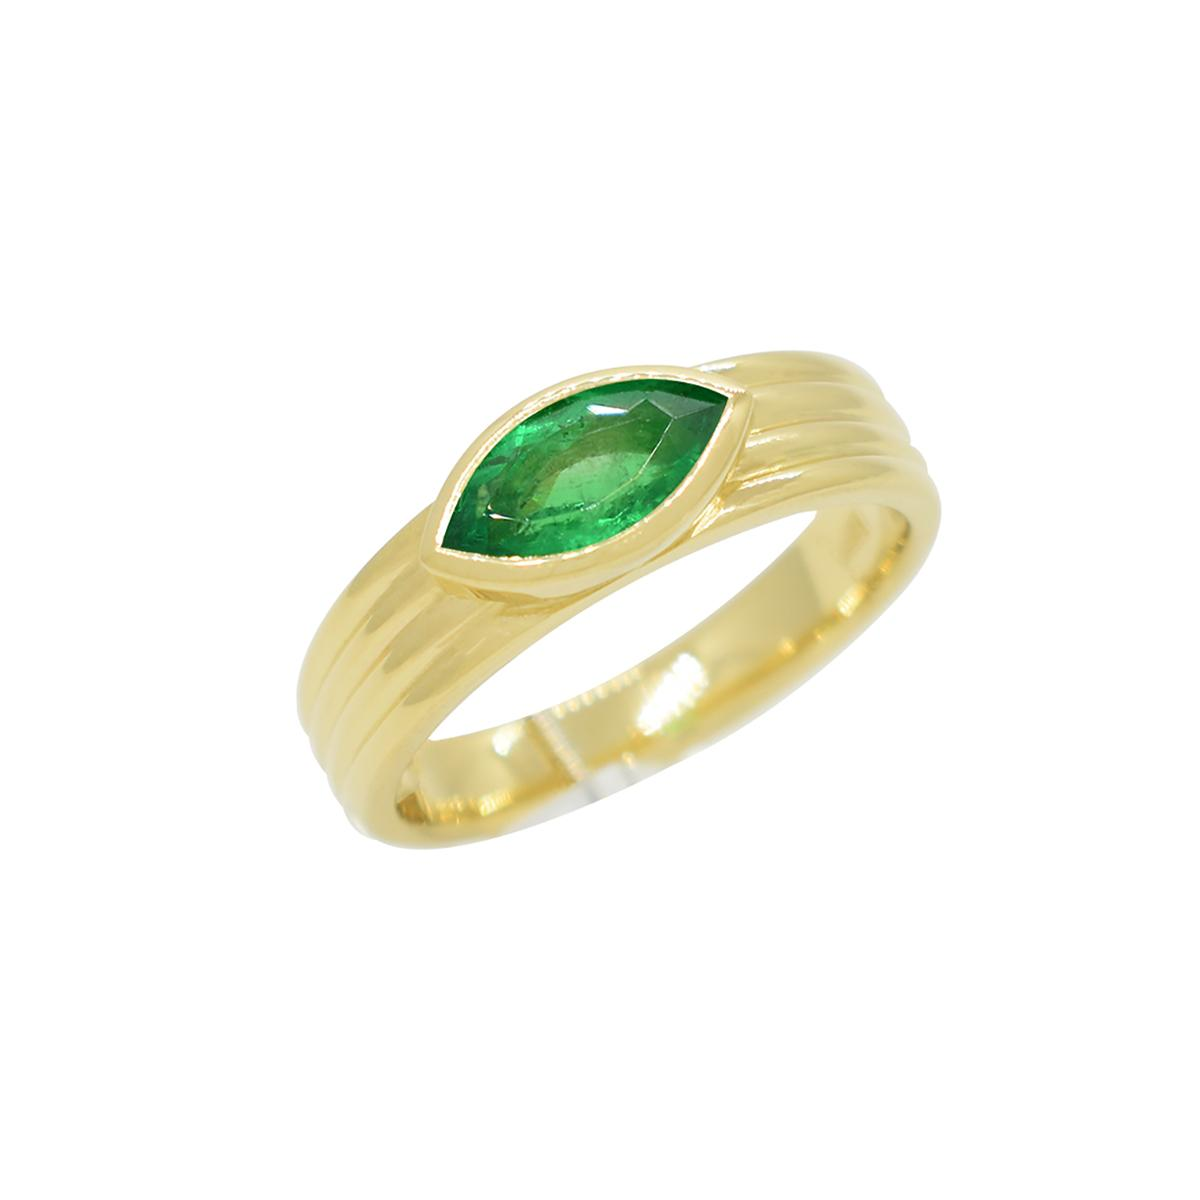 18k-gold-solitaire-emerald-ring-with-marquise-shape-natural-emerald